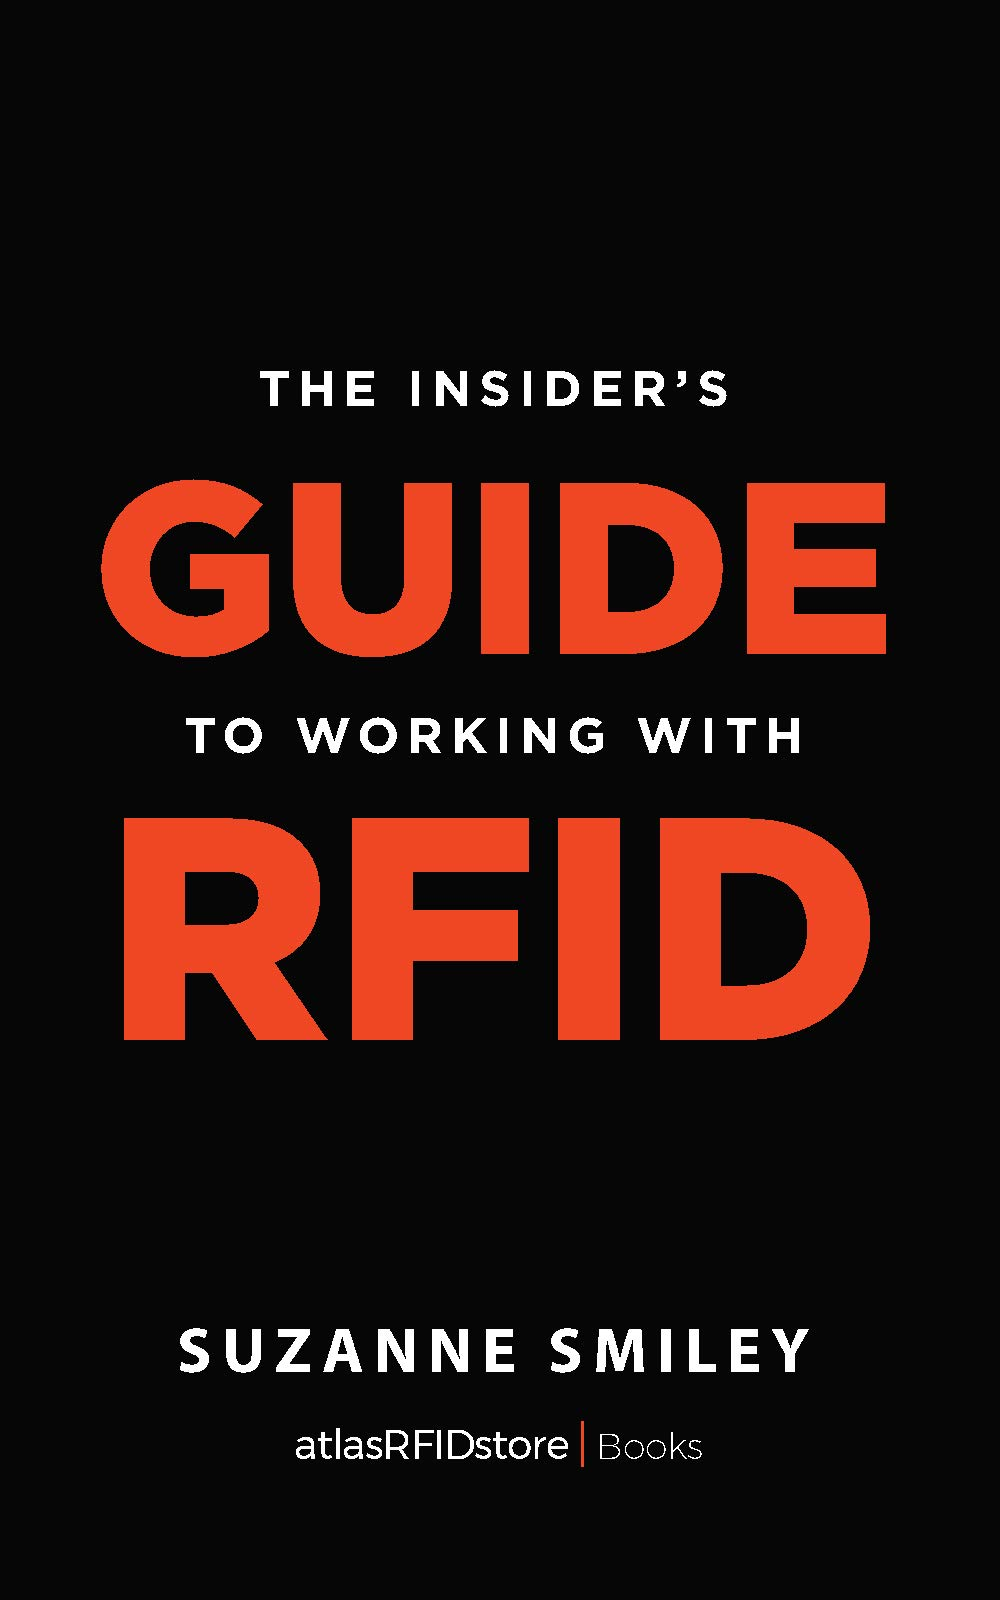 The Insider's Guide to Working With RFID